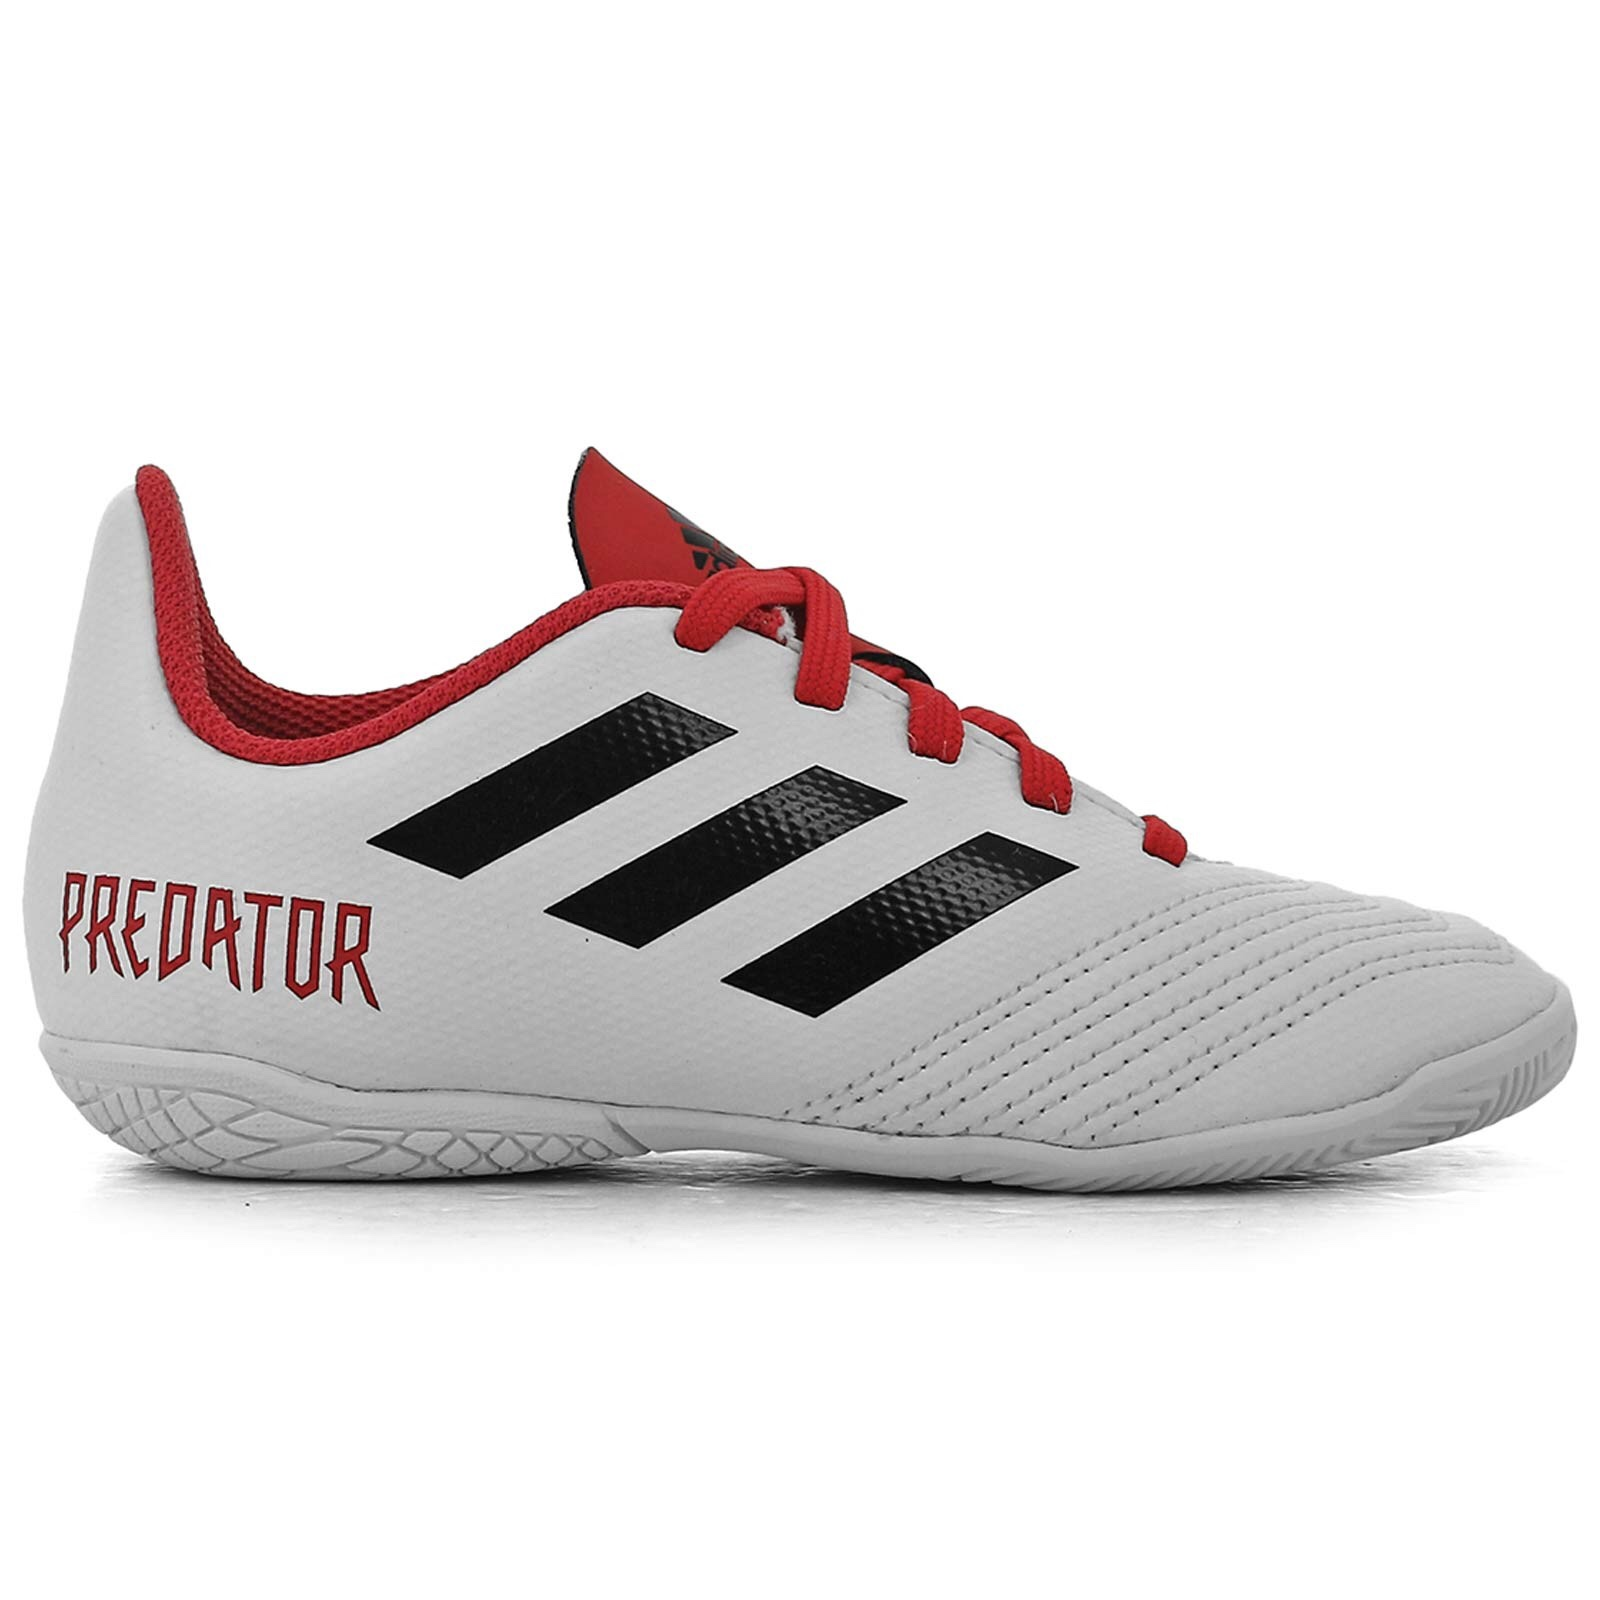 huge discount 10130 29b74 Adidas Predator Tango 18.4 TF Junior (White Red Black) - The Football  Factory